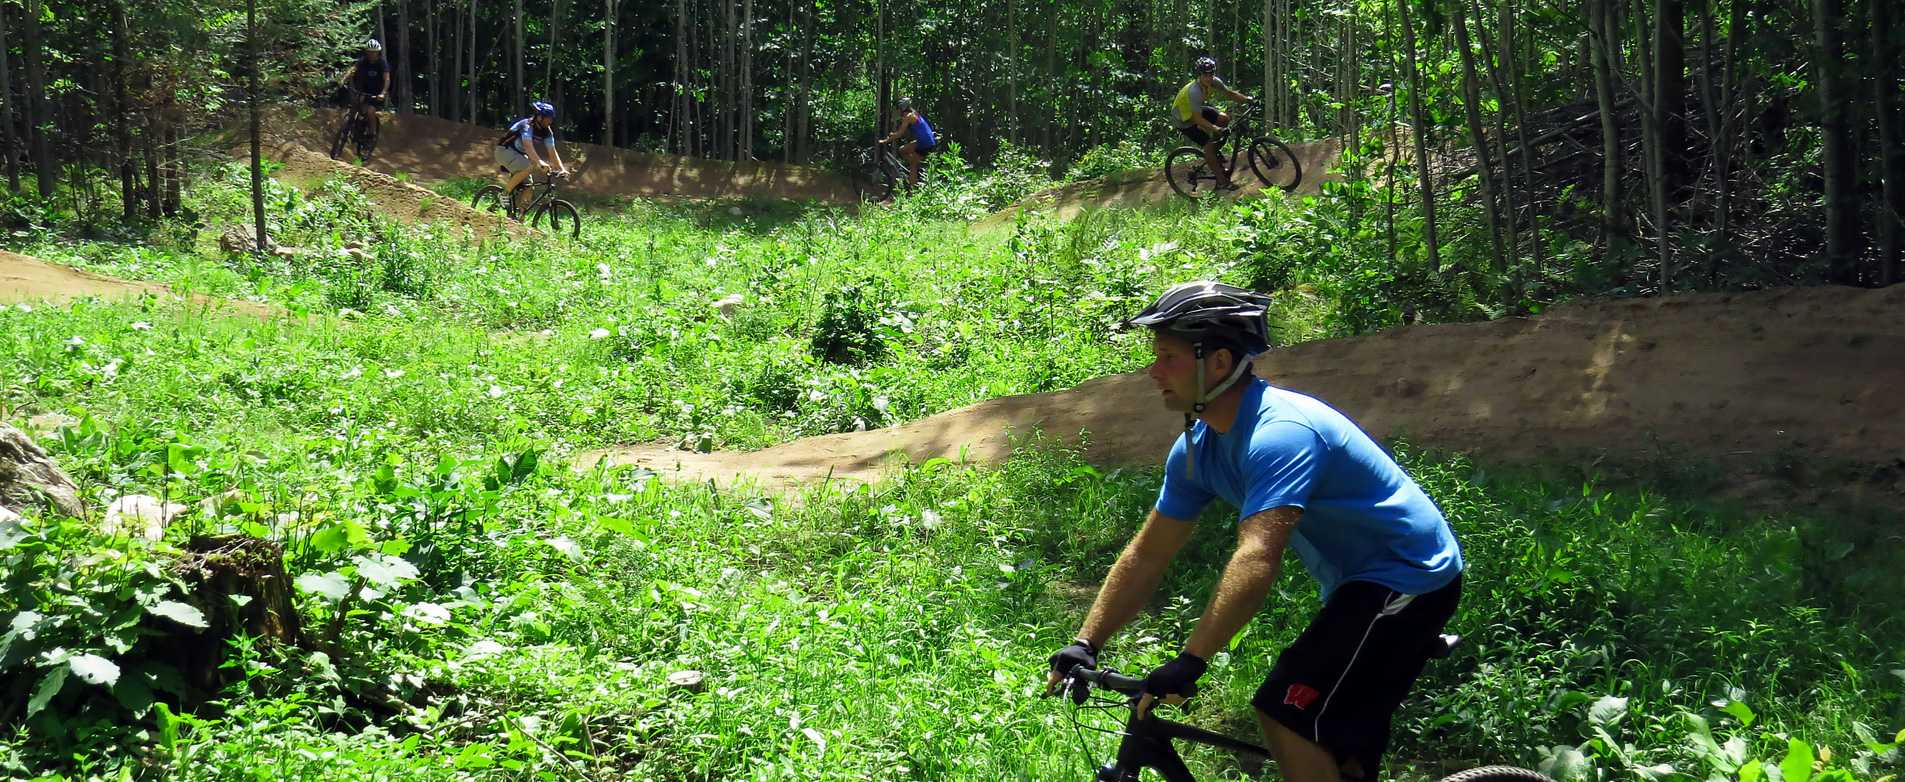 WinMan Trails Mountain Biking